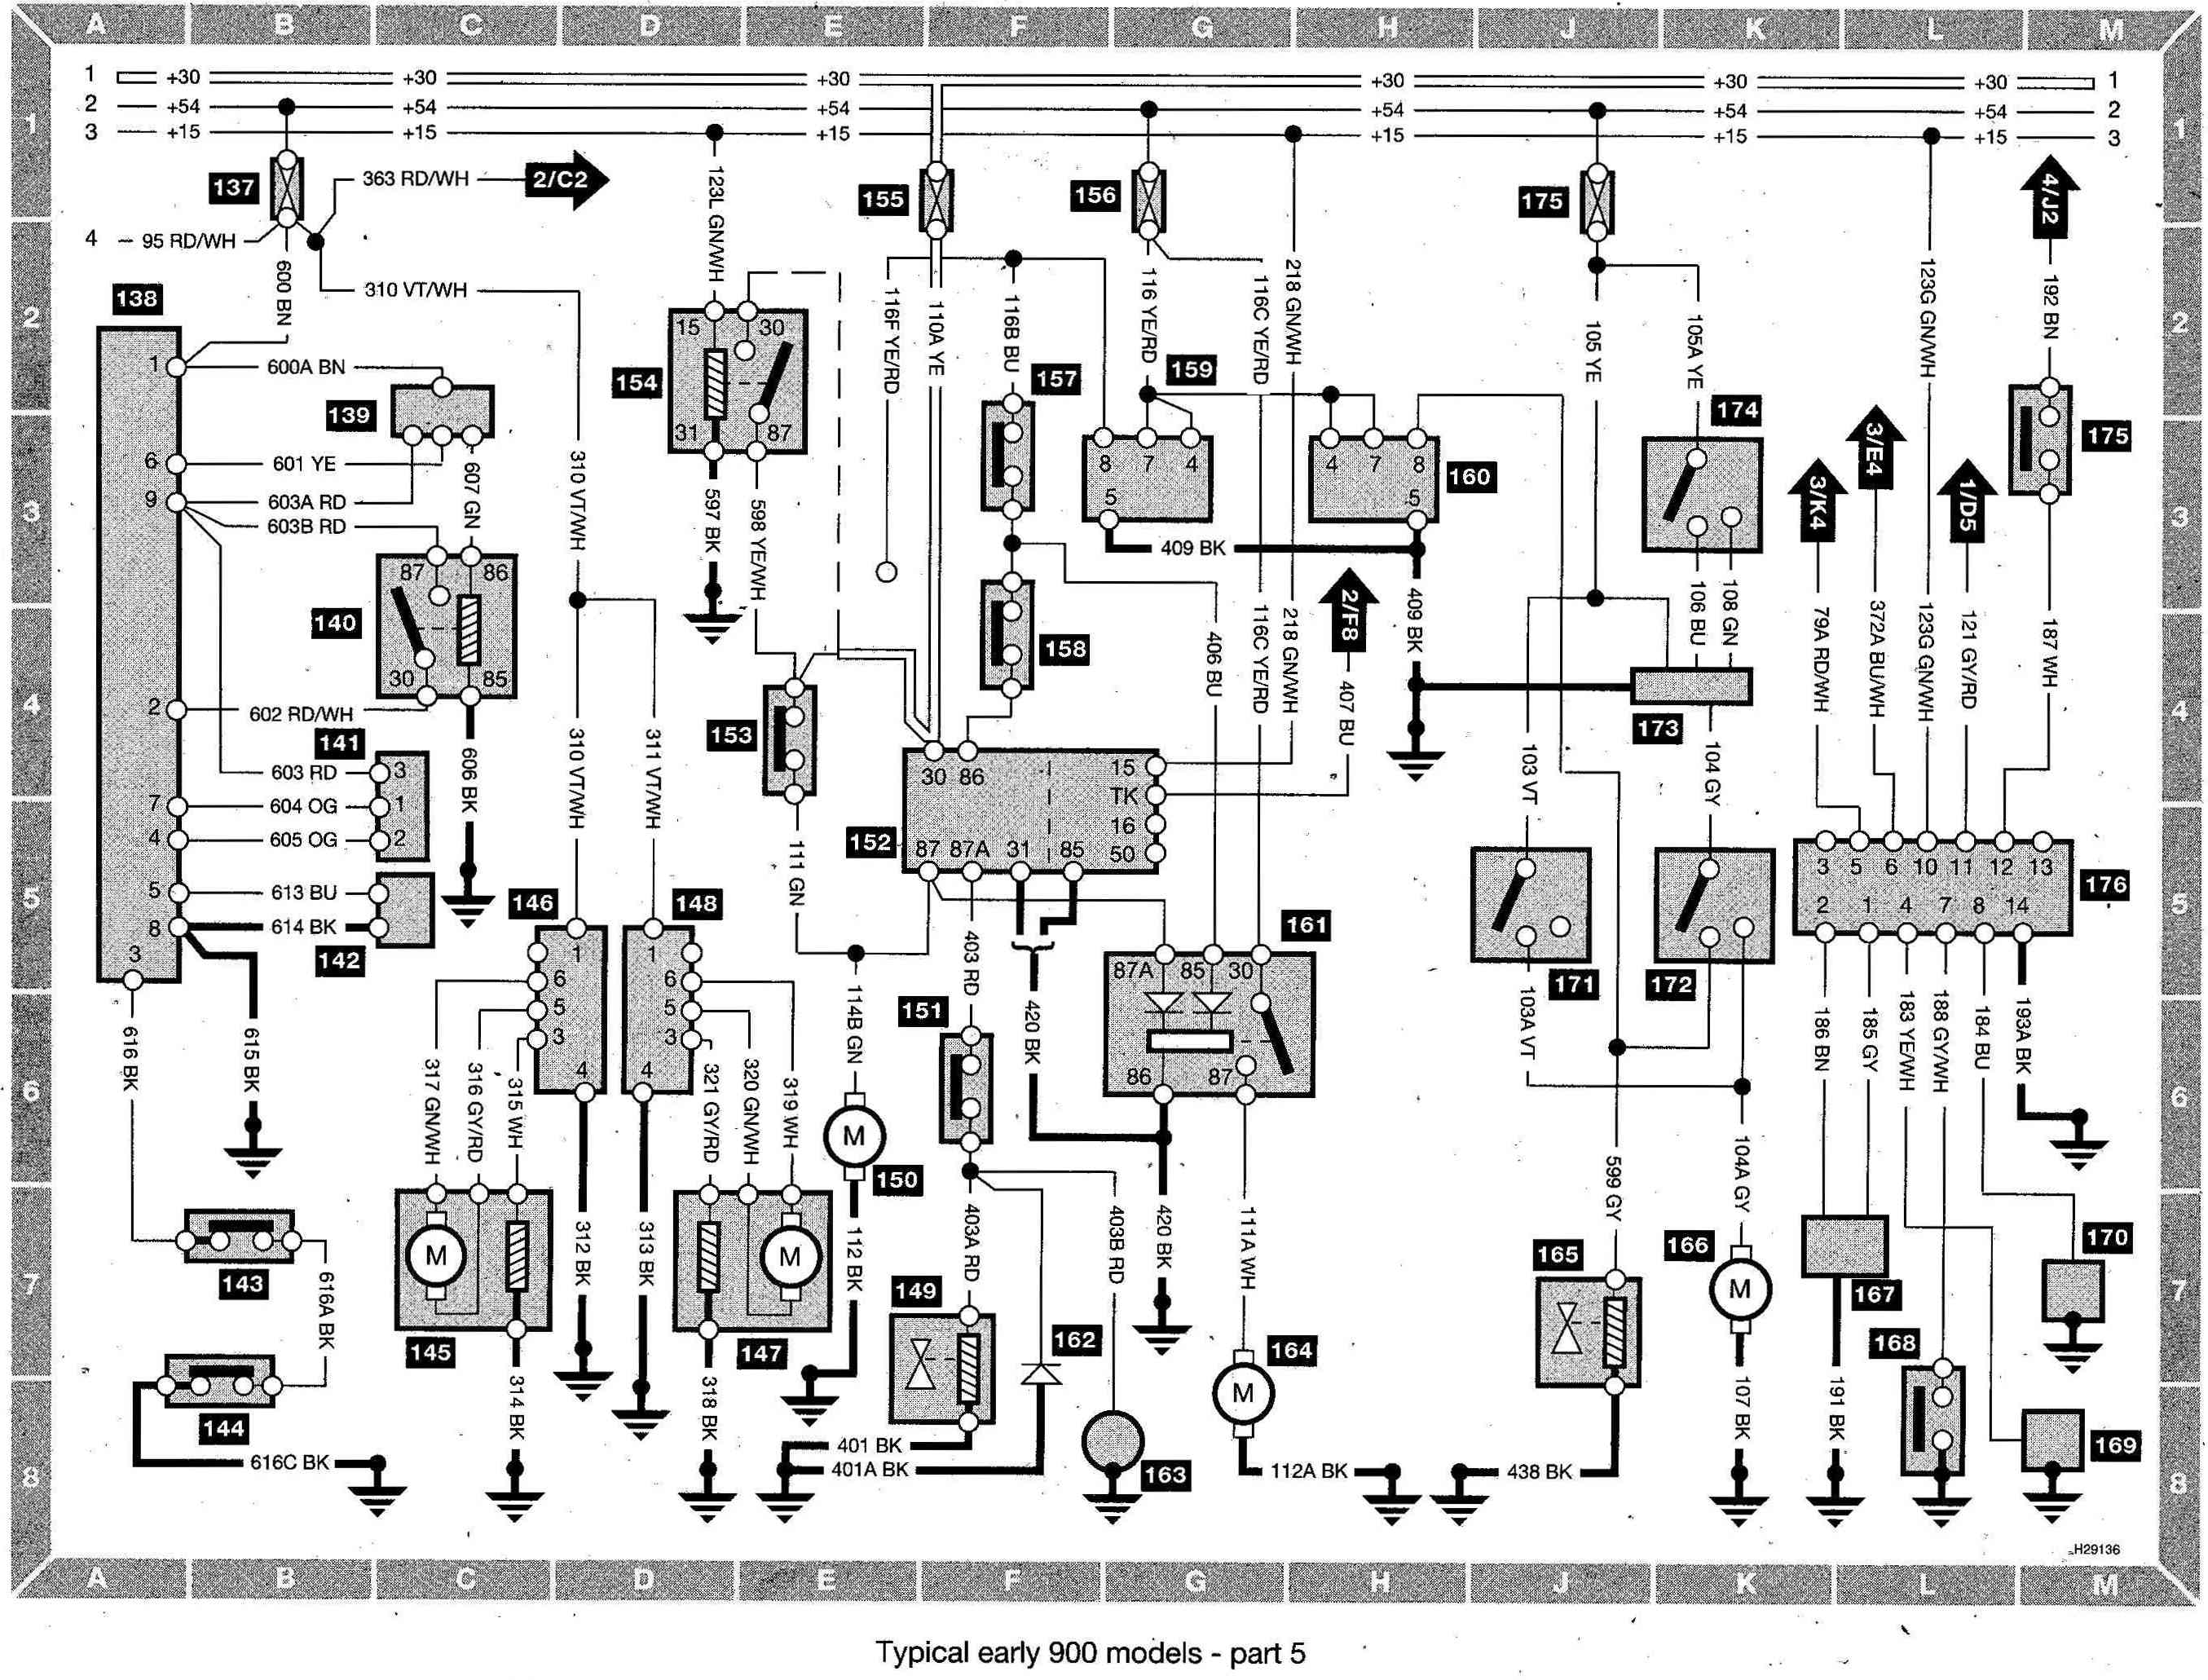 saab 900 wiring diagram download 1992 saab 900 wiring diagram saab wiring harness saab free engine image for user